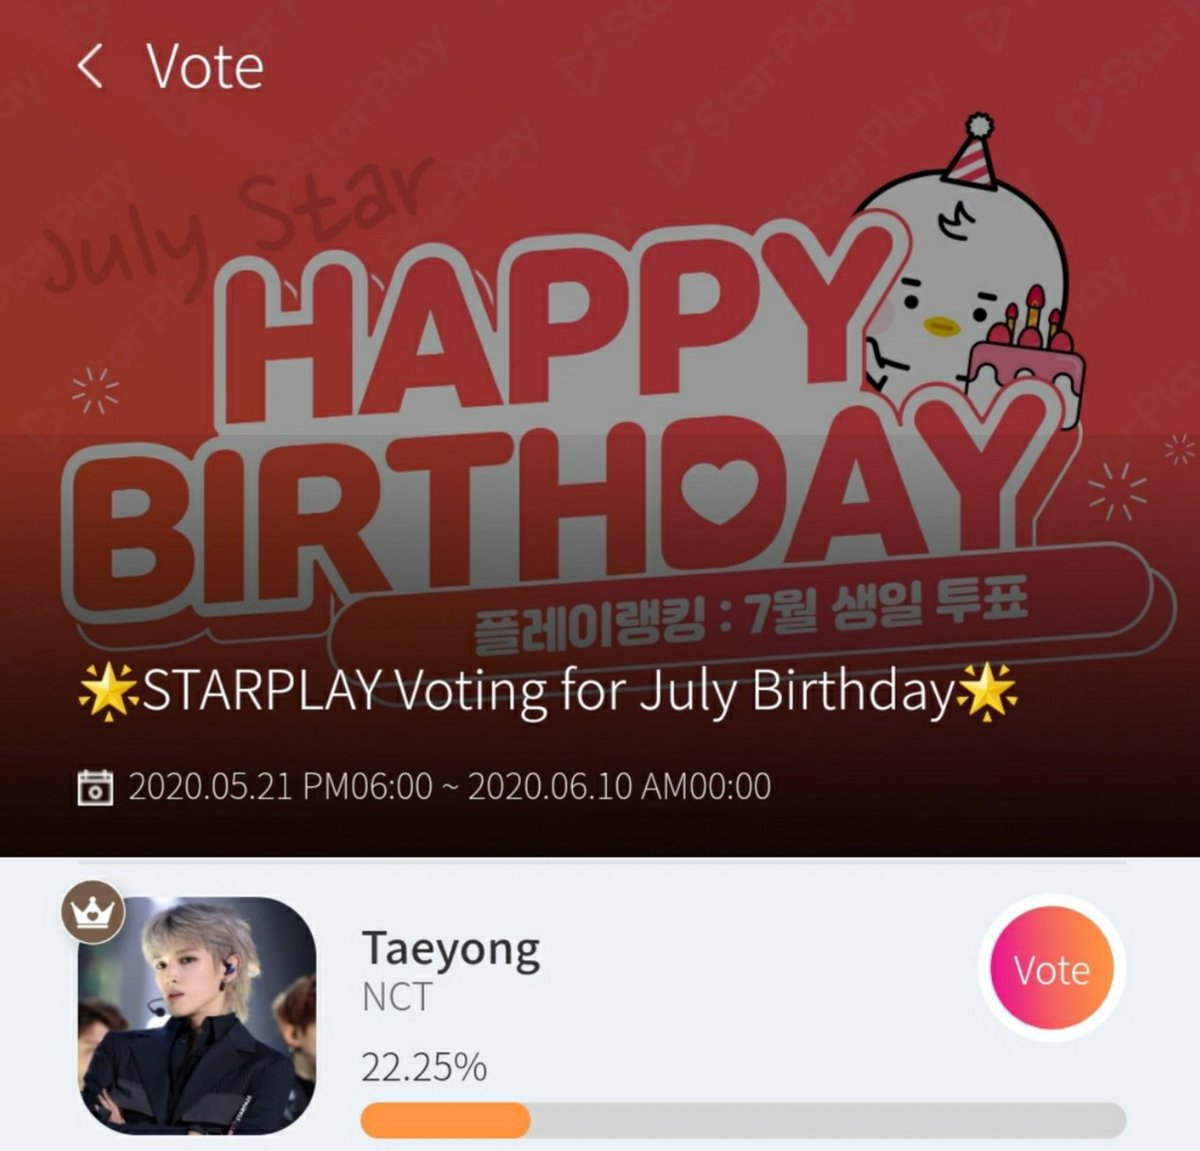 [VOTE] Taeyong's Birthday Ads 2020   StarPlay   200610  12 AM KST   Currently in 3rd Place    Needs 1st or 2nd Place to win an Ad  FANPLUS   200616  5 PM KST   Currently in 5th Place    Needs 1st to 3rd Place to win an Ad  #태용 #TAEYONG @NCTsmtown<br>http://pic.twitter.com/dJraSfN5qZ